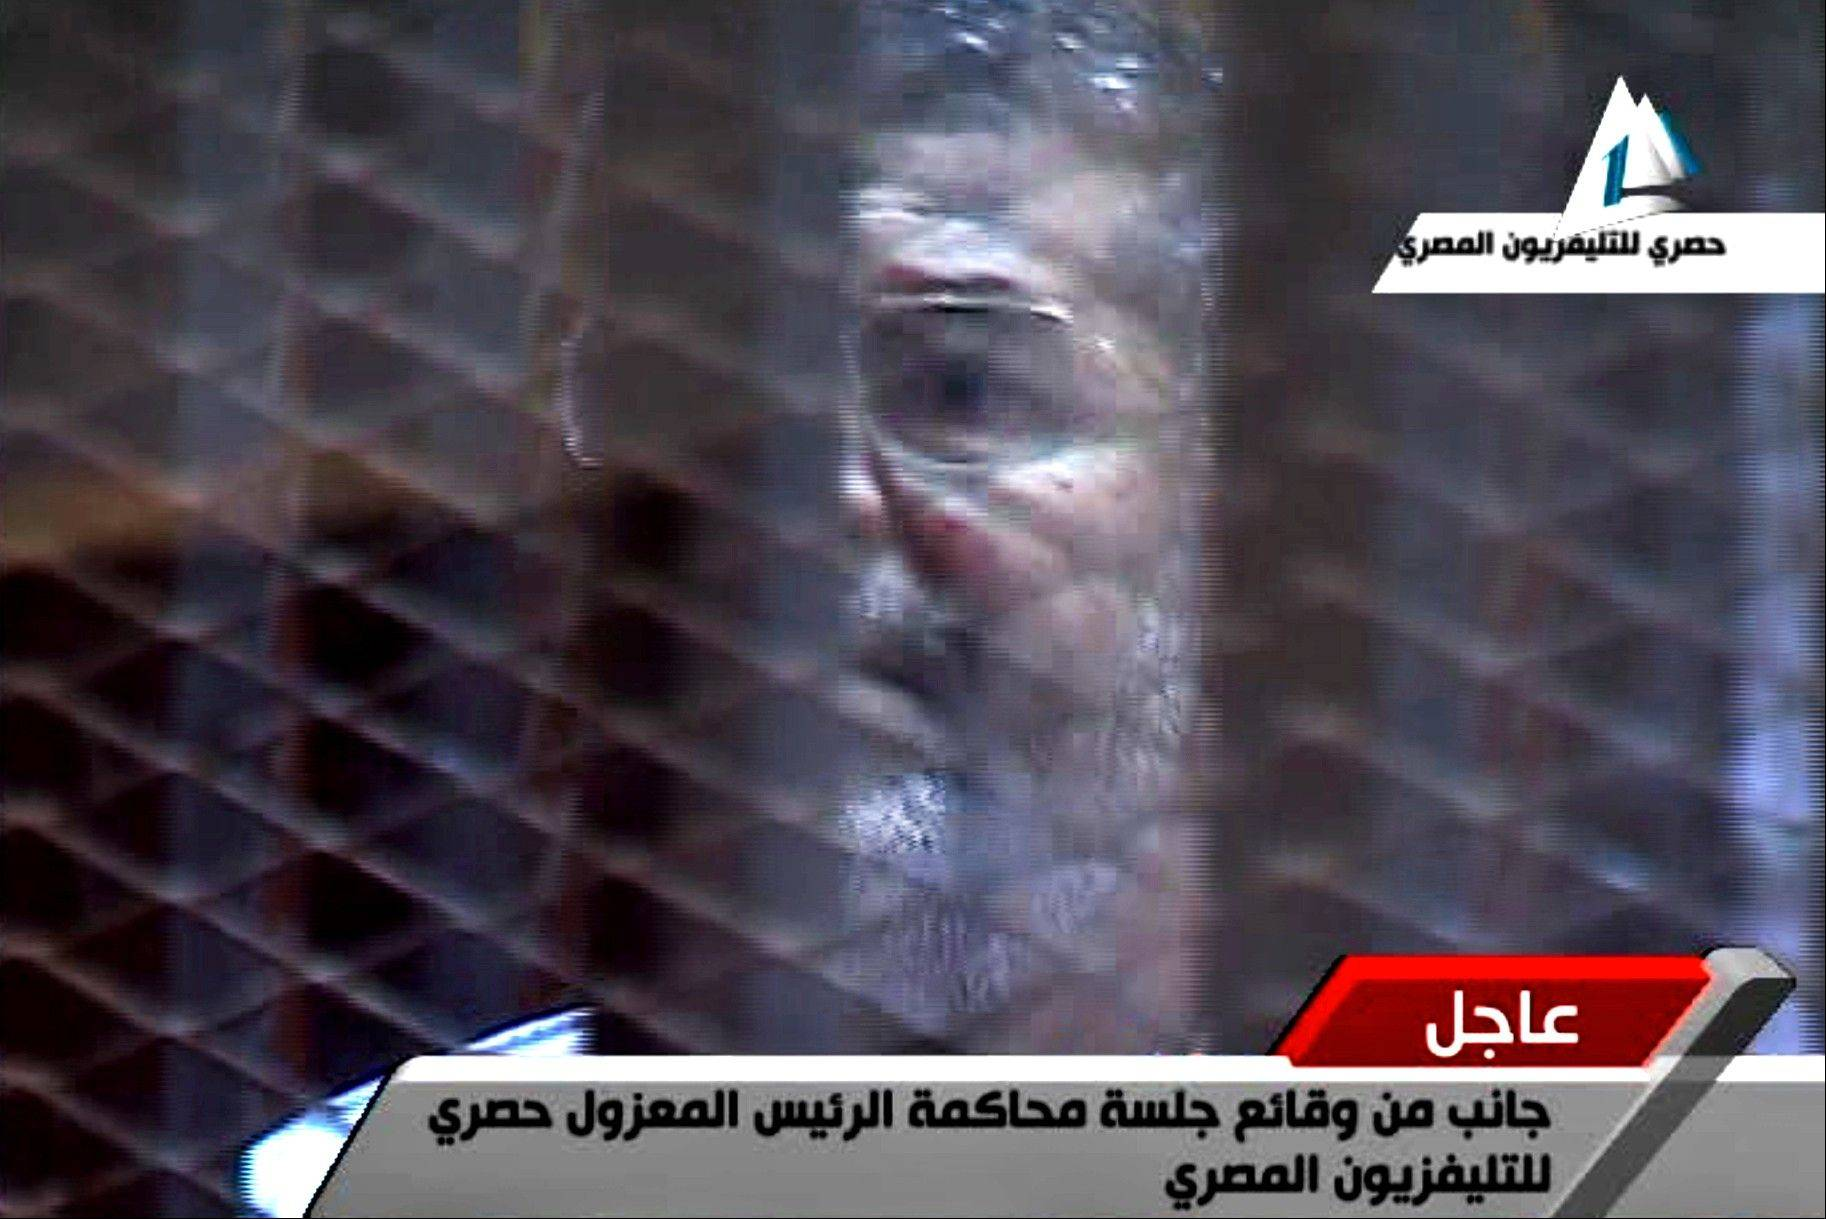 Egypt�s toppled President Mohammed Morsi stands inside a glass-encased metal cage in a courtroom in Cairo, Egypt, Tuesday, Jan. 28. 2014. Morsi was separated from other defendants for the start of a new trial Tuesday over charges from prison breaks during the country�s 2011 revolution, state television reported.